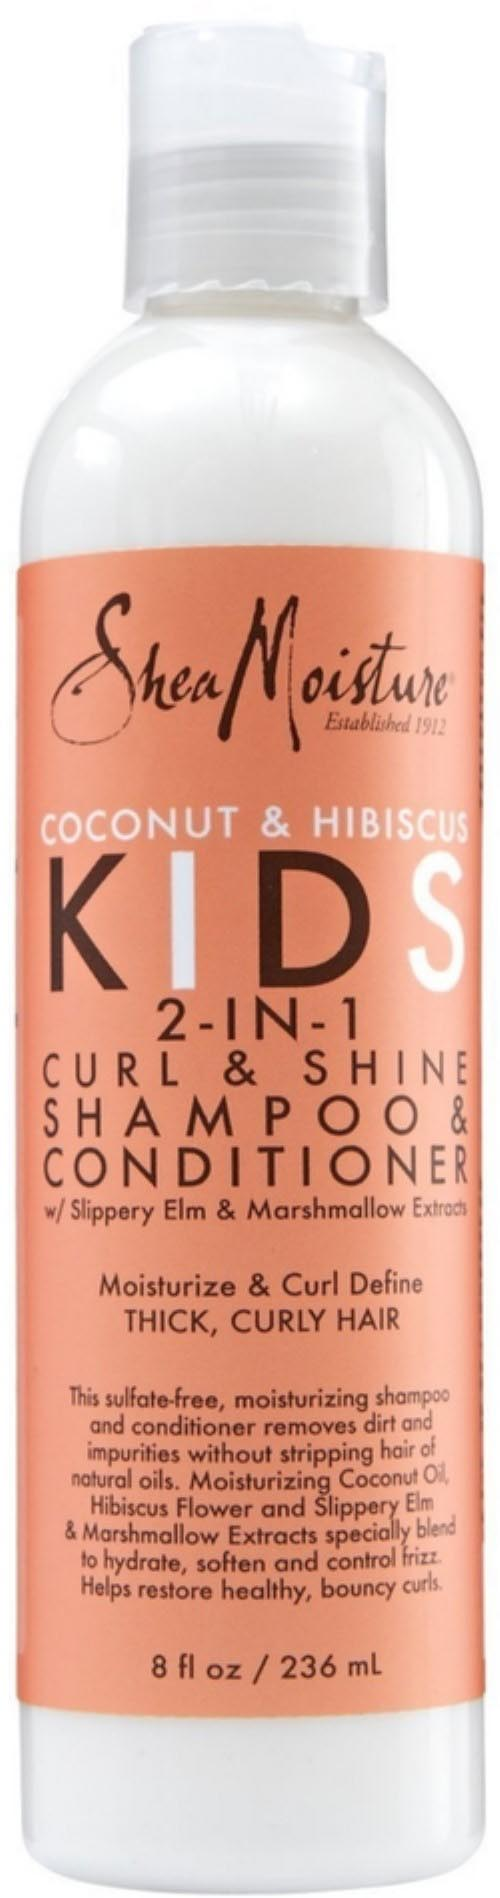 SheaMoisture Coconut & Hibiscus Kids 2in1 Shampoo & Conditioner